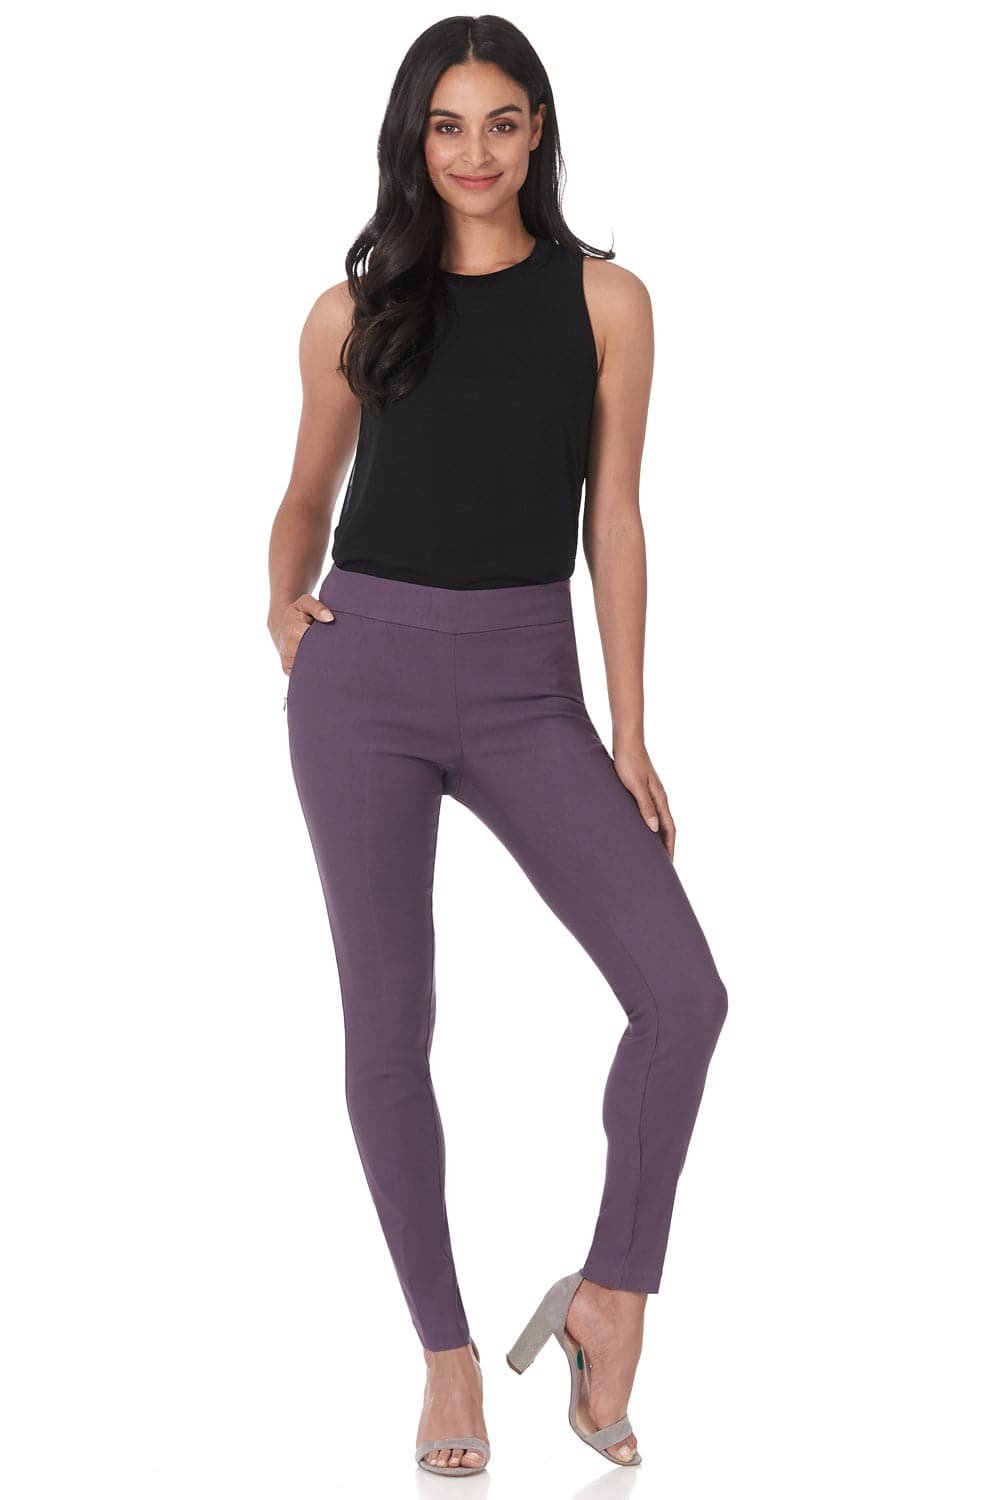 Pull-on skinny dress pants